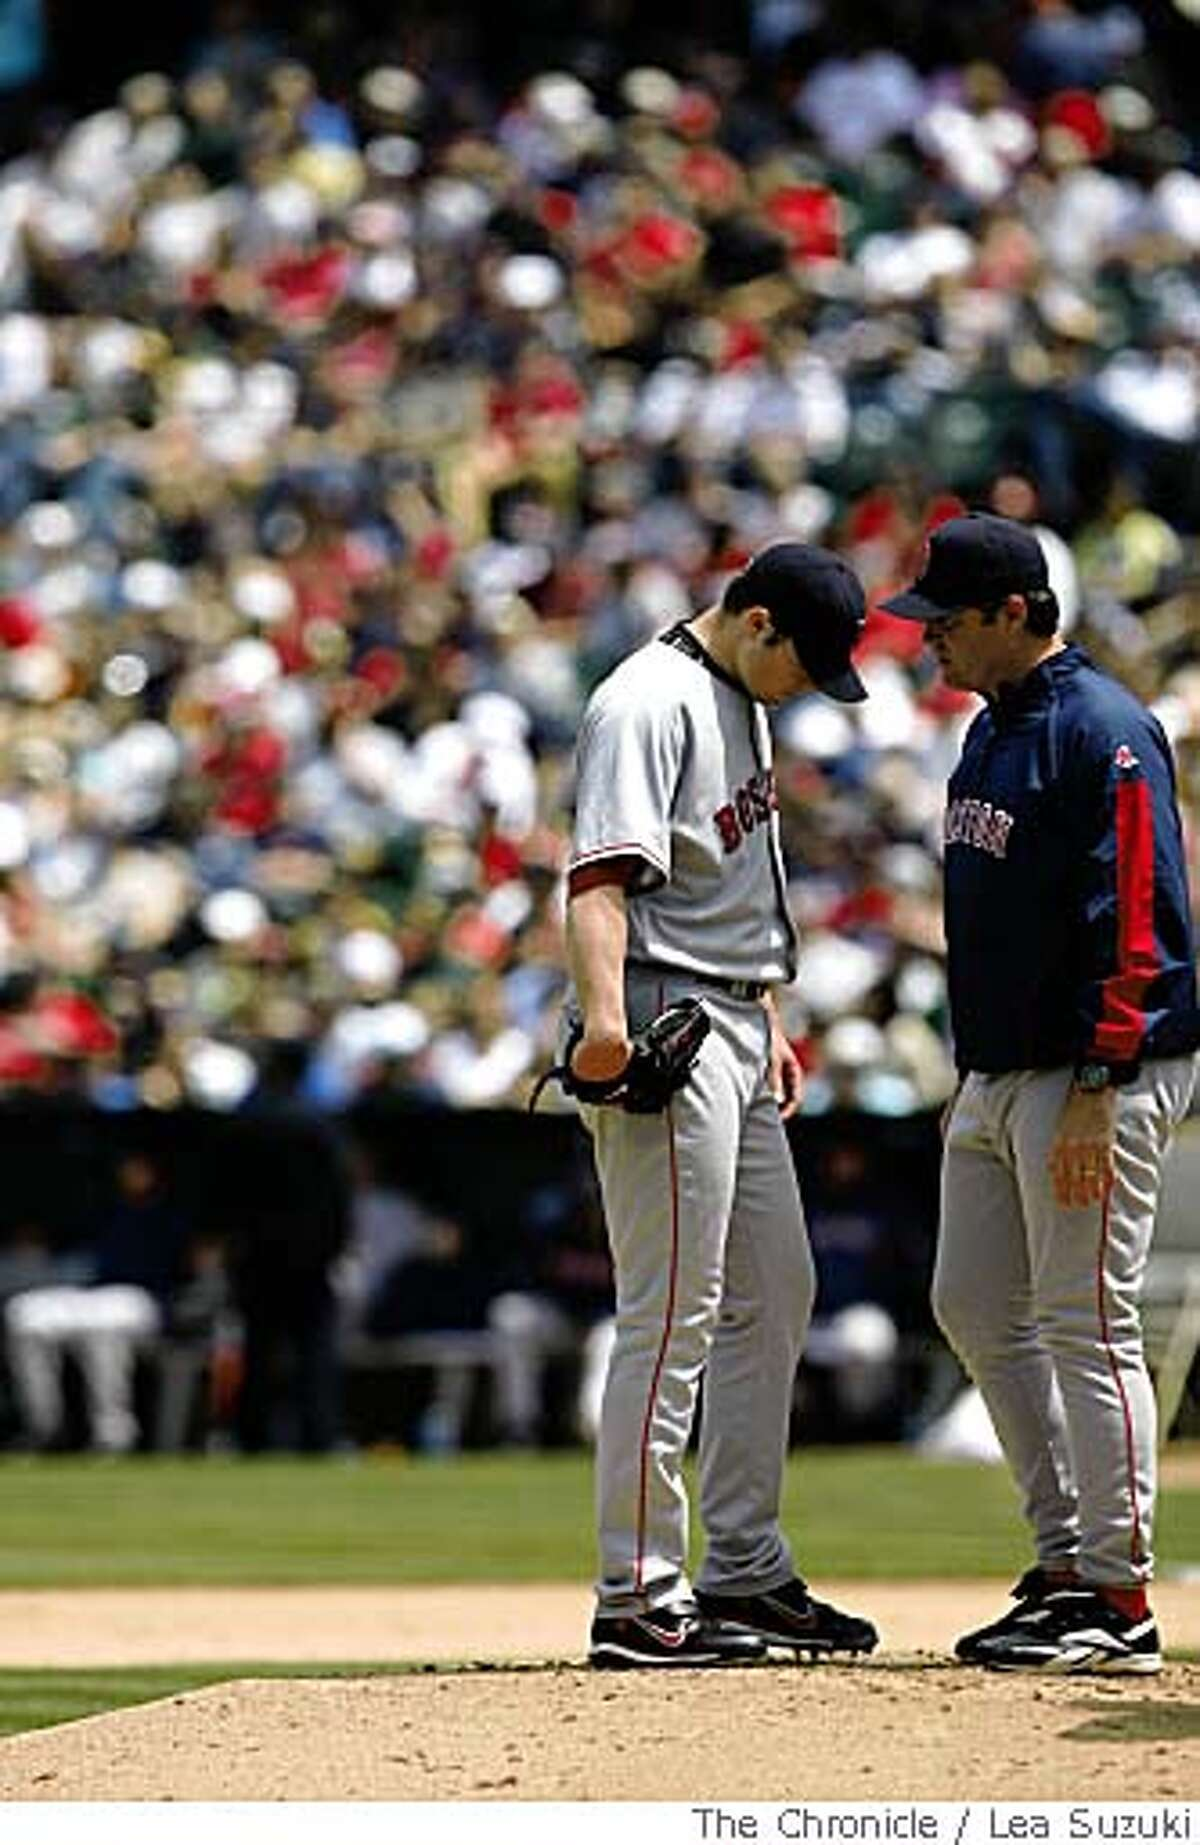 Boston pitcher Jon Lester was among the attractions when the Red Sox played at the Coliseum, increasing daily attendance. Chronicle photo by Lea Suzuki